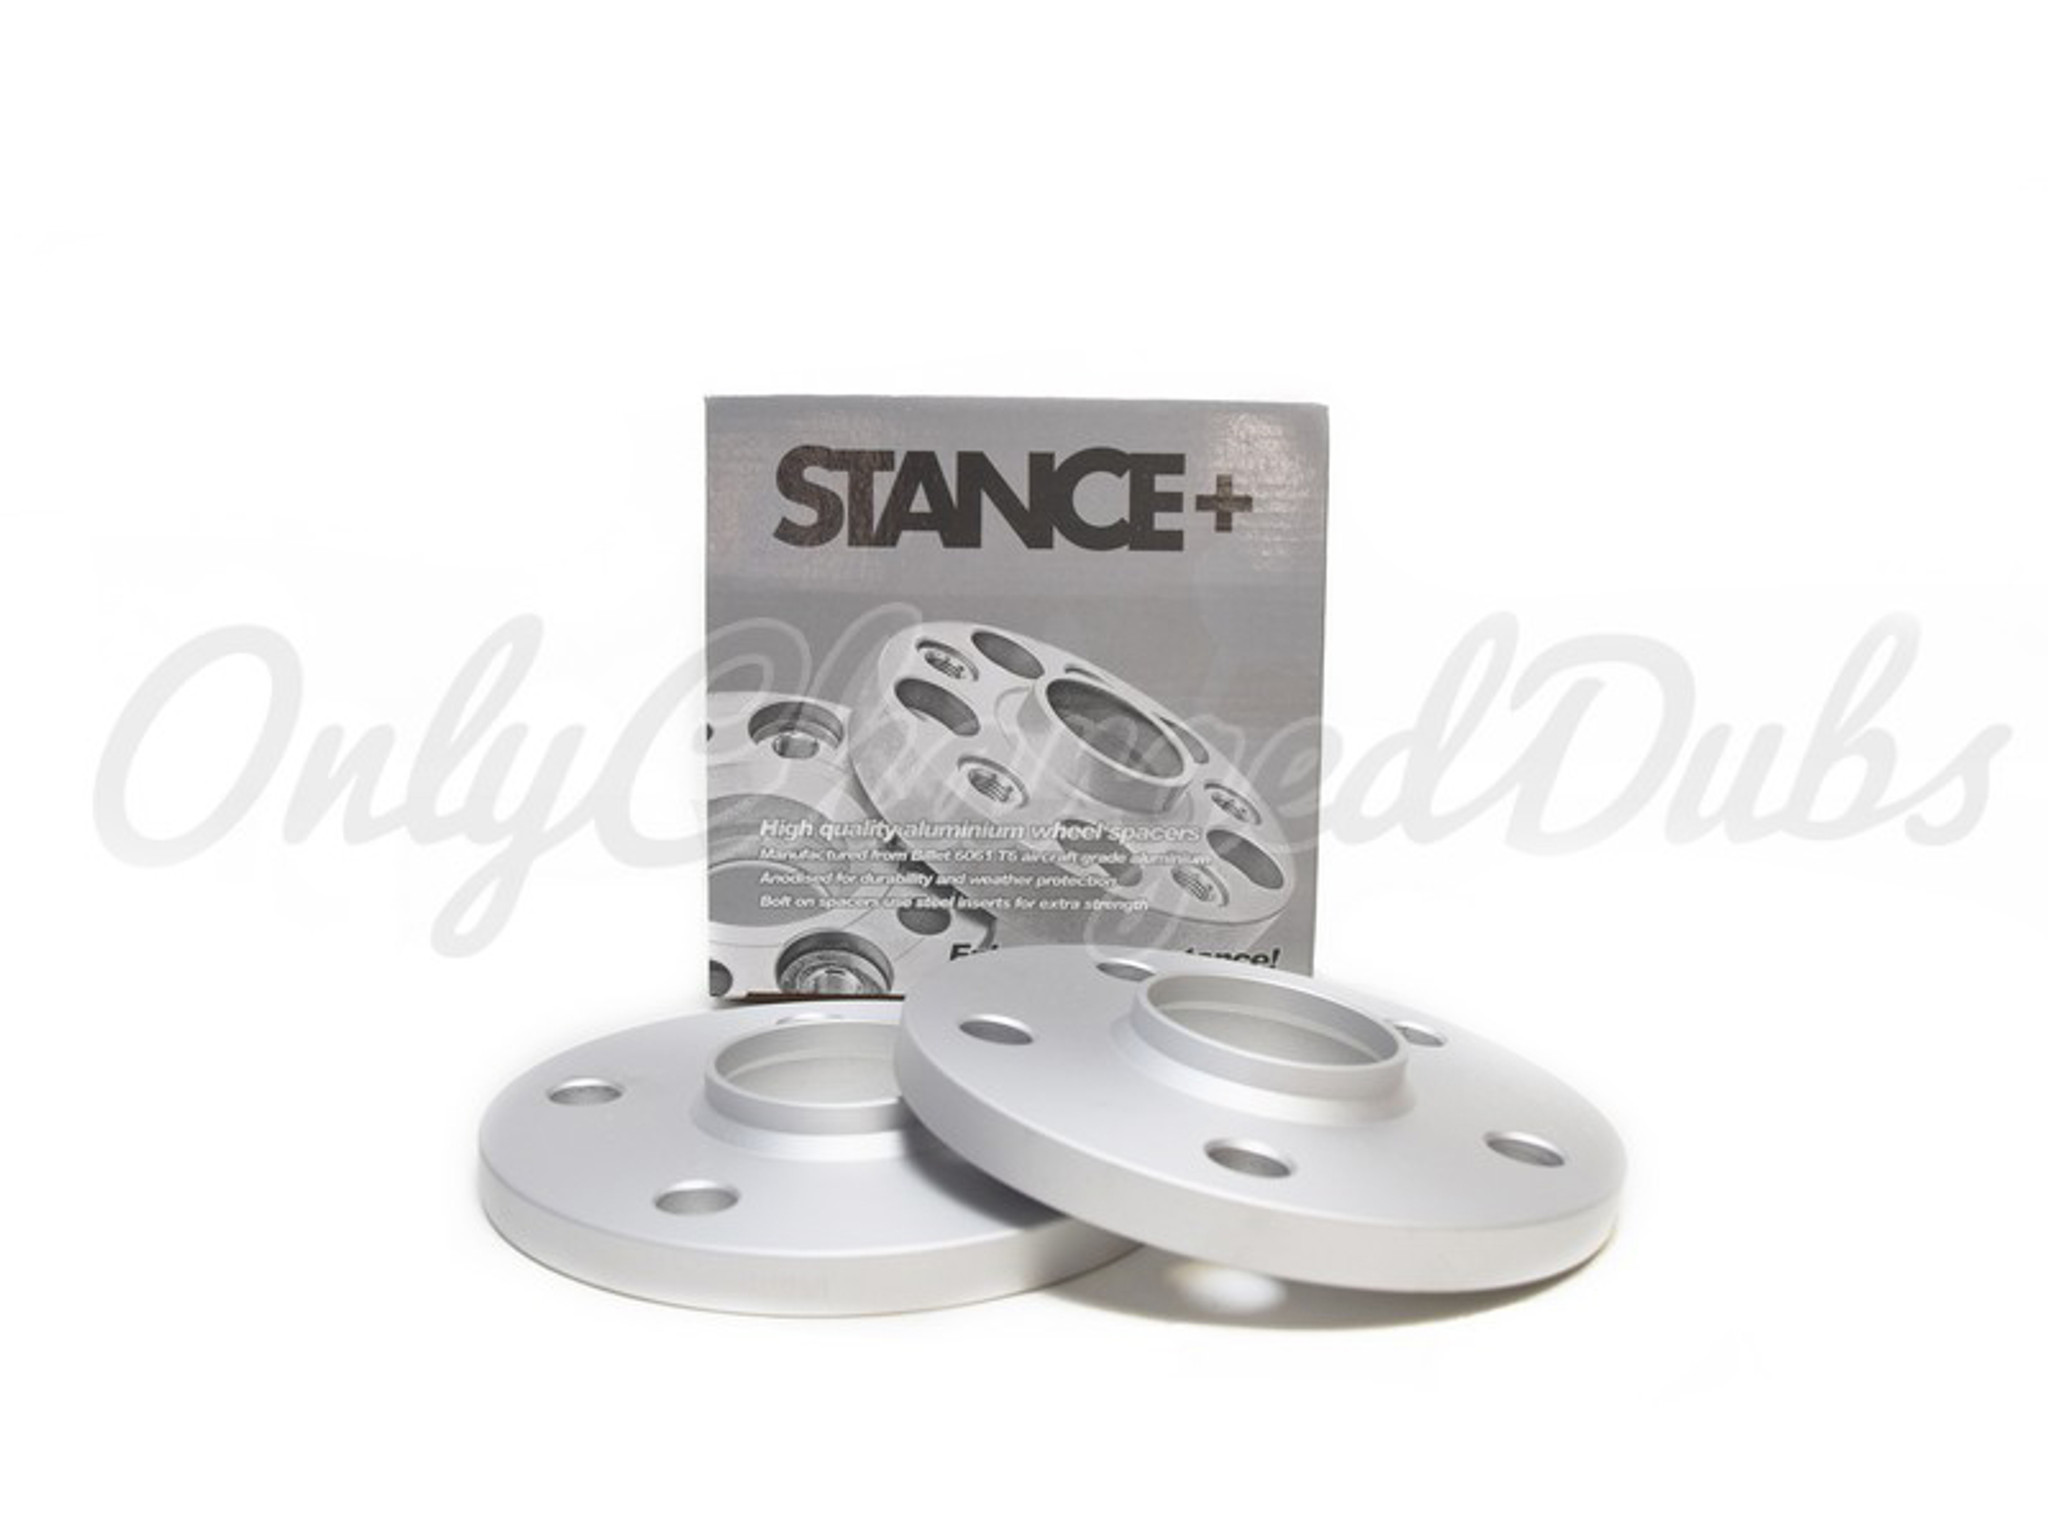 Wheel Spacers Pair of Spacer Shims 5x112 for Mercedes C-Class 07-14 W204 5mm